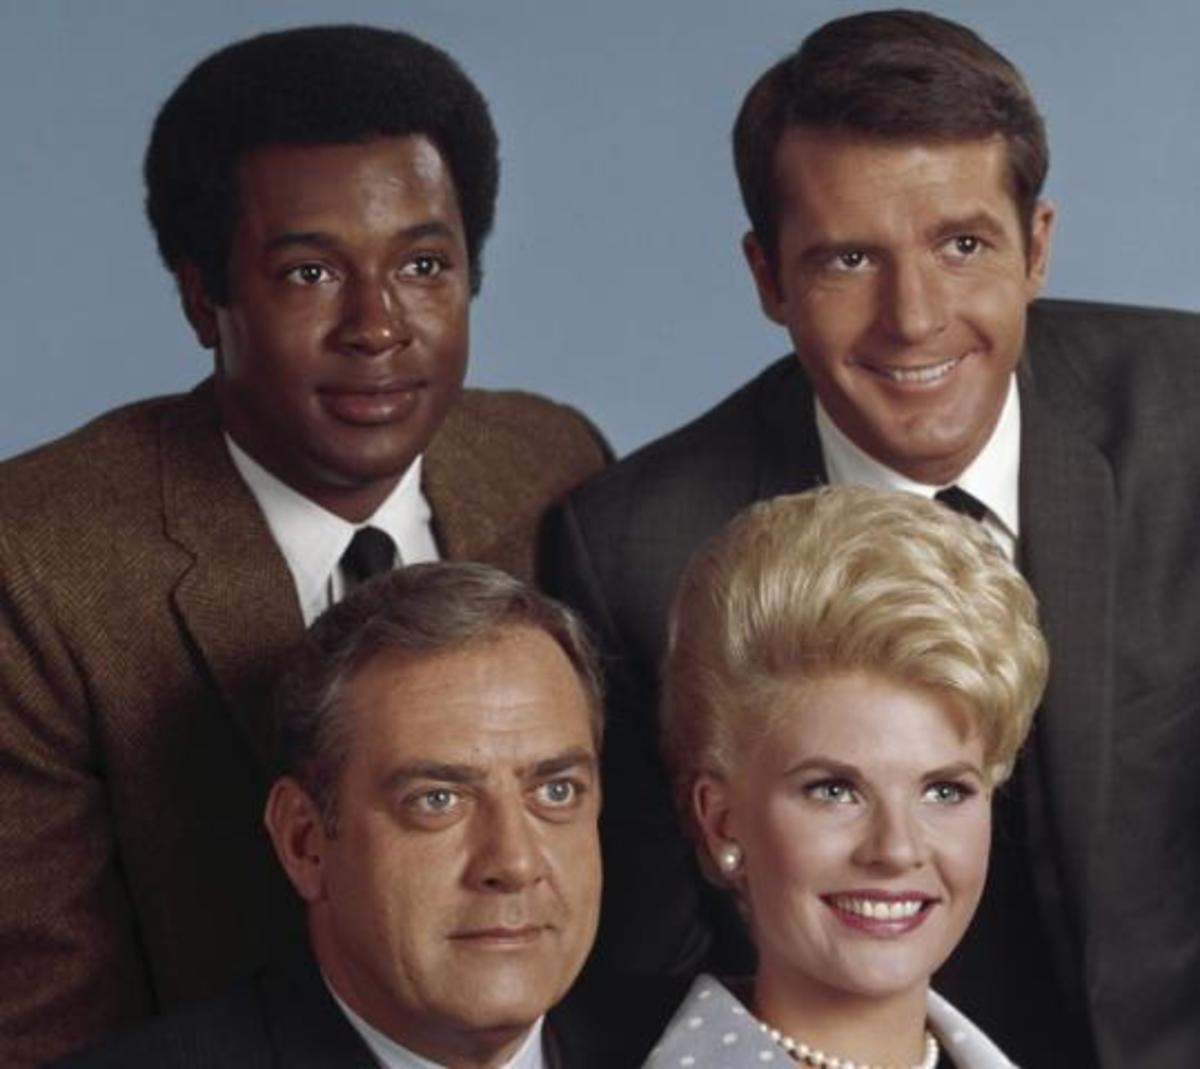 Don Mitchell, as Mark Sanger, with the cast of Ironside.